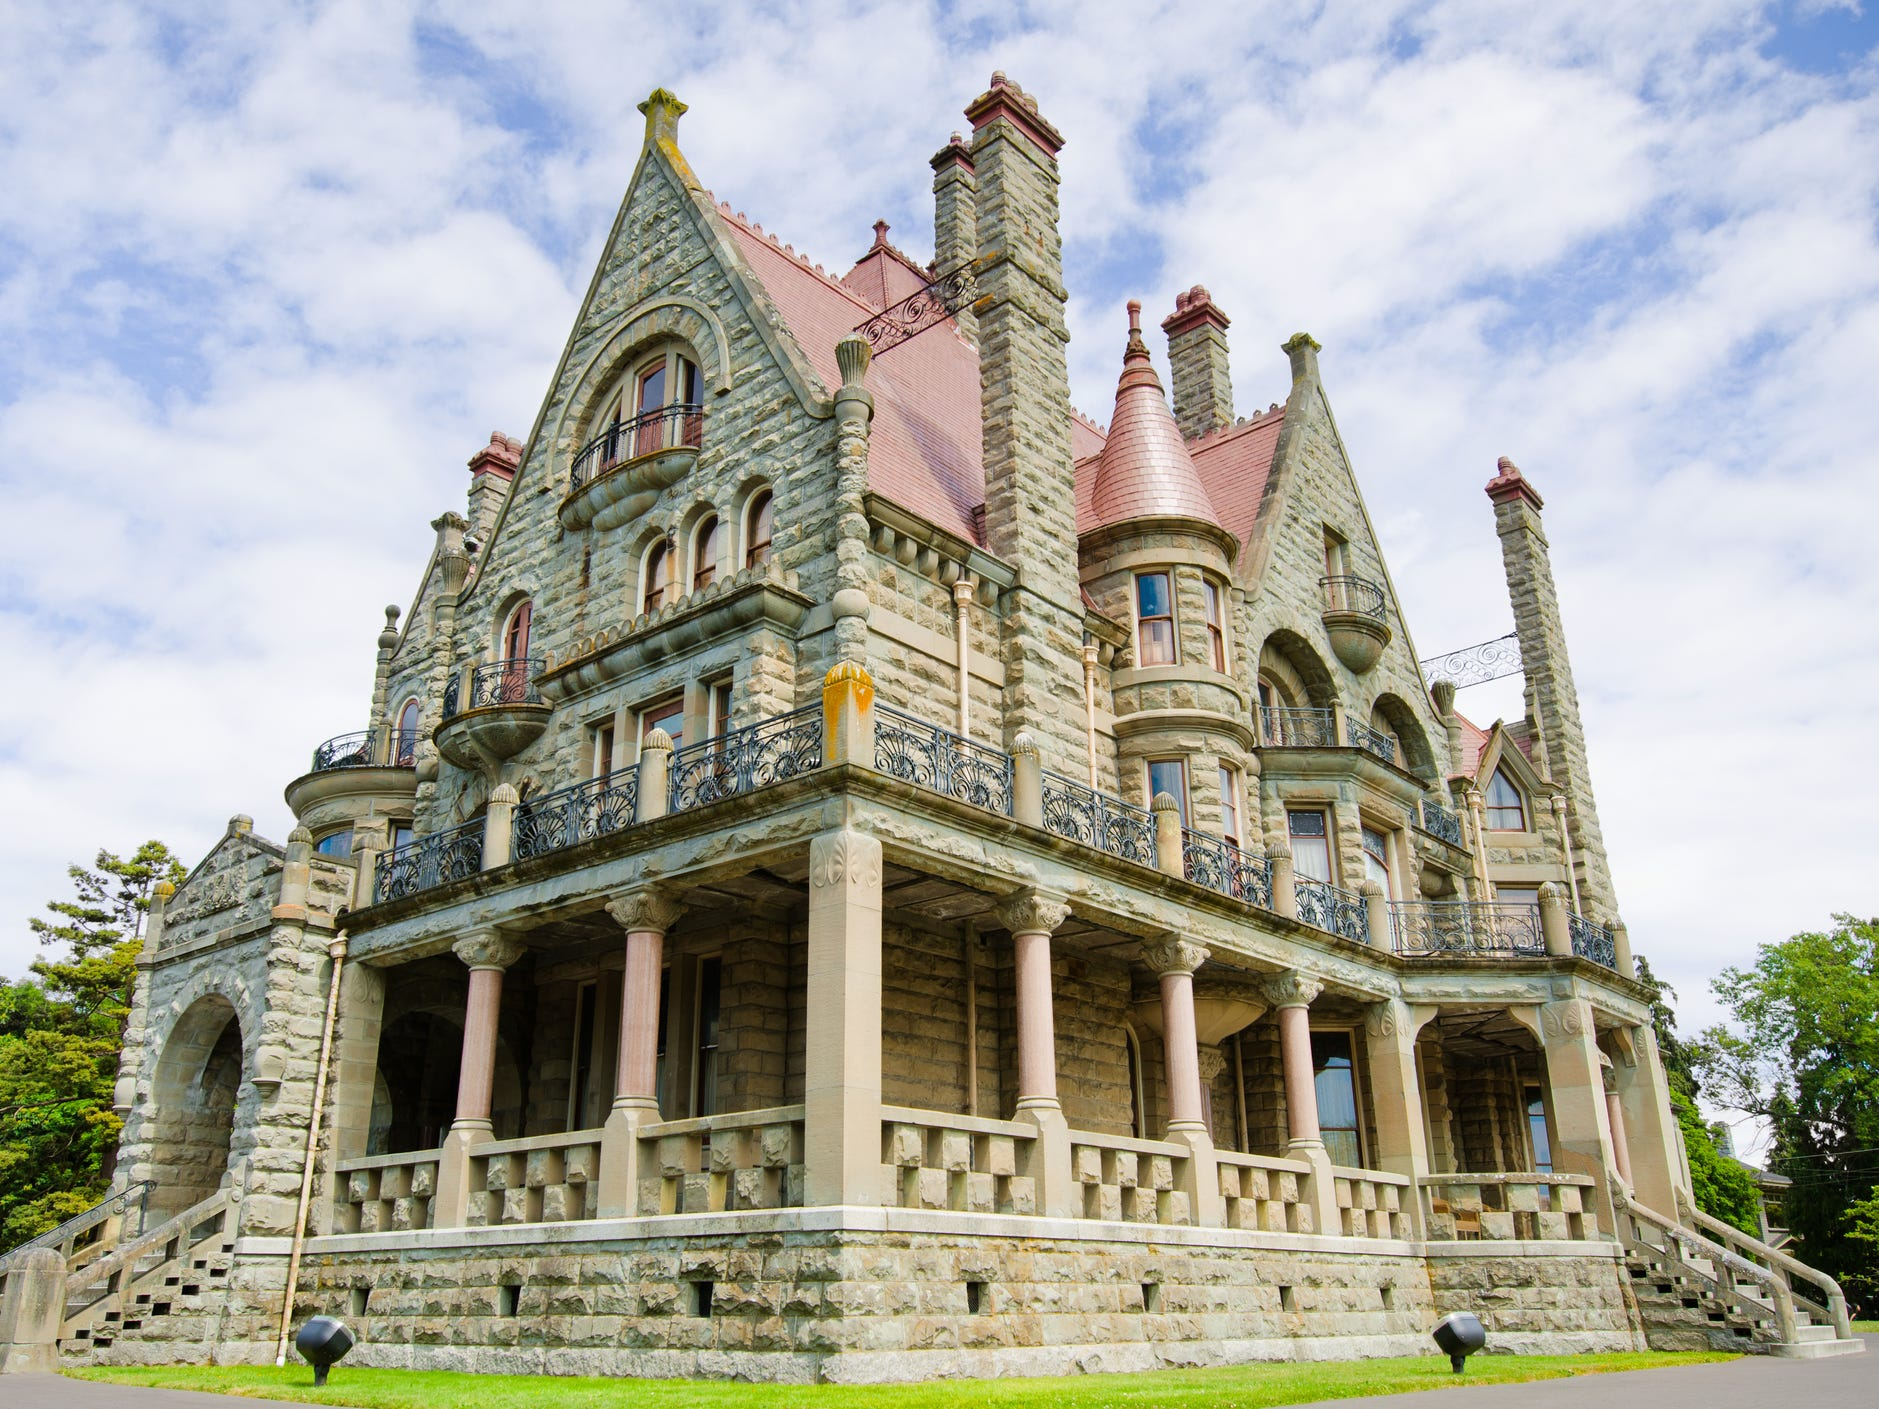 Craigdarroch Castle in Victoria, British Columbia: Built by an oil baron in the late 19th century, Canada's Craigdarroch Castle is a glamorous sight.